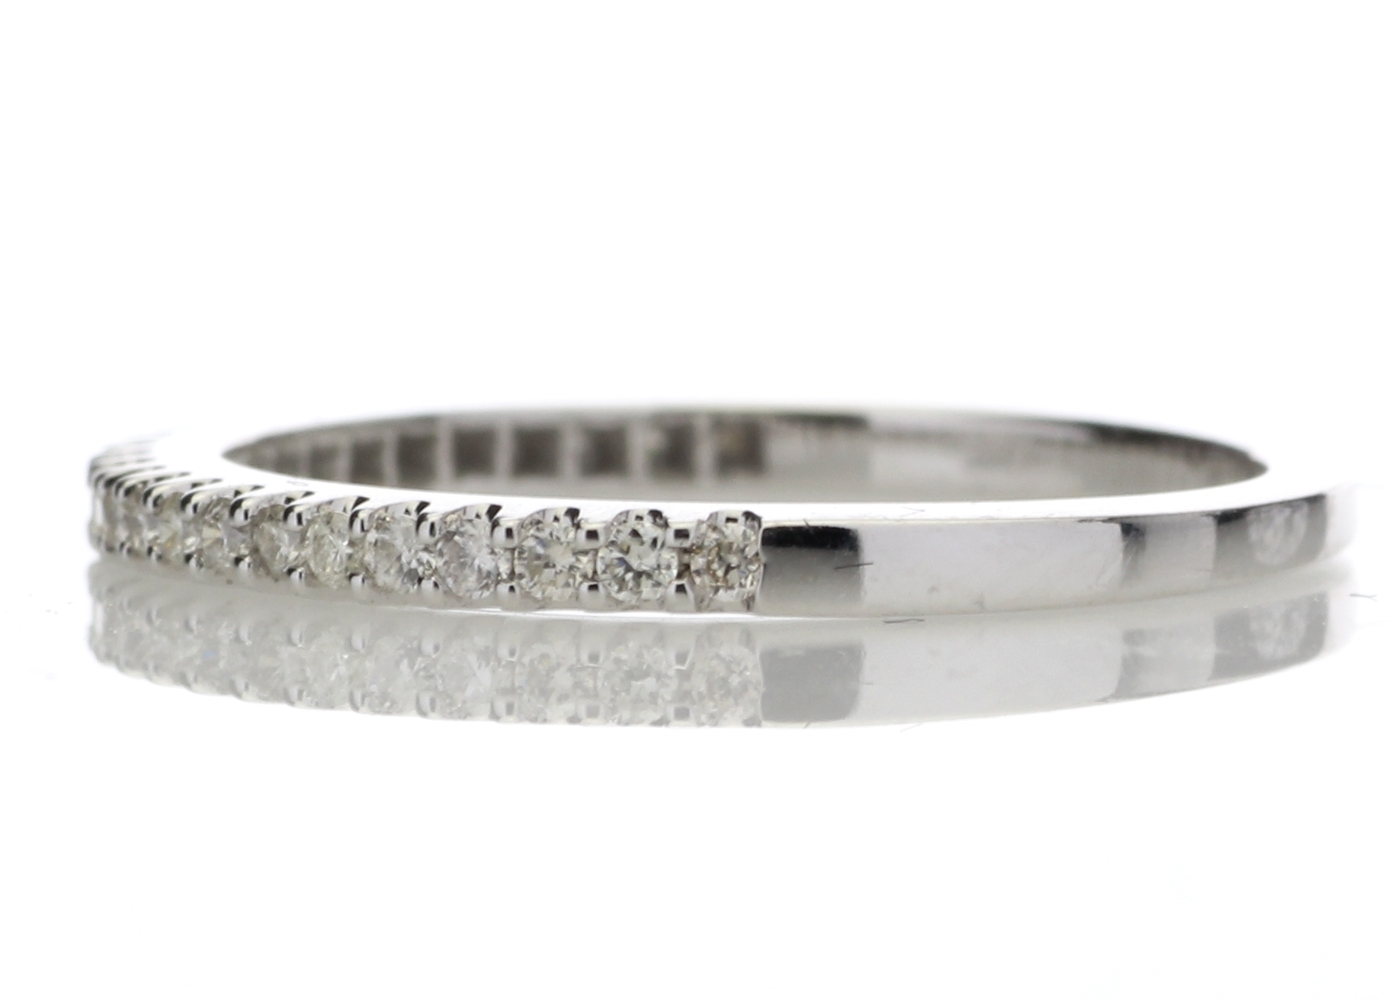 9ct White Gold Diamond Half Eternity Ring 0.25 Carats - Image 3 of 4